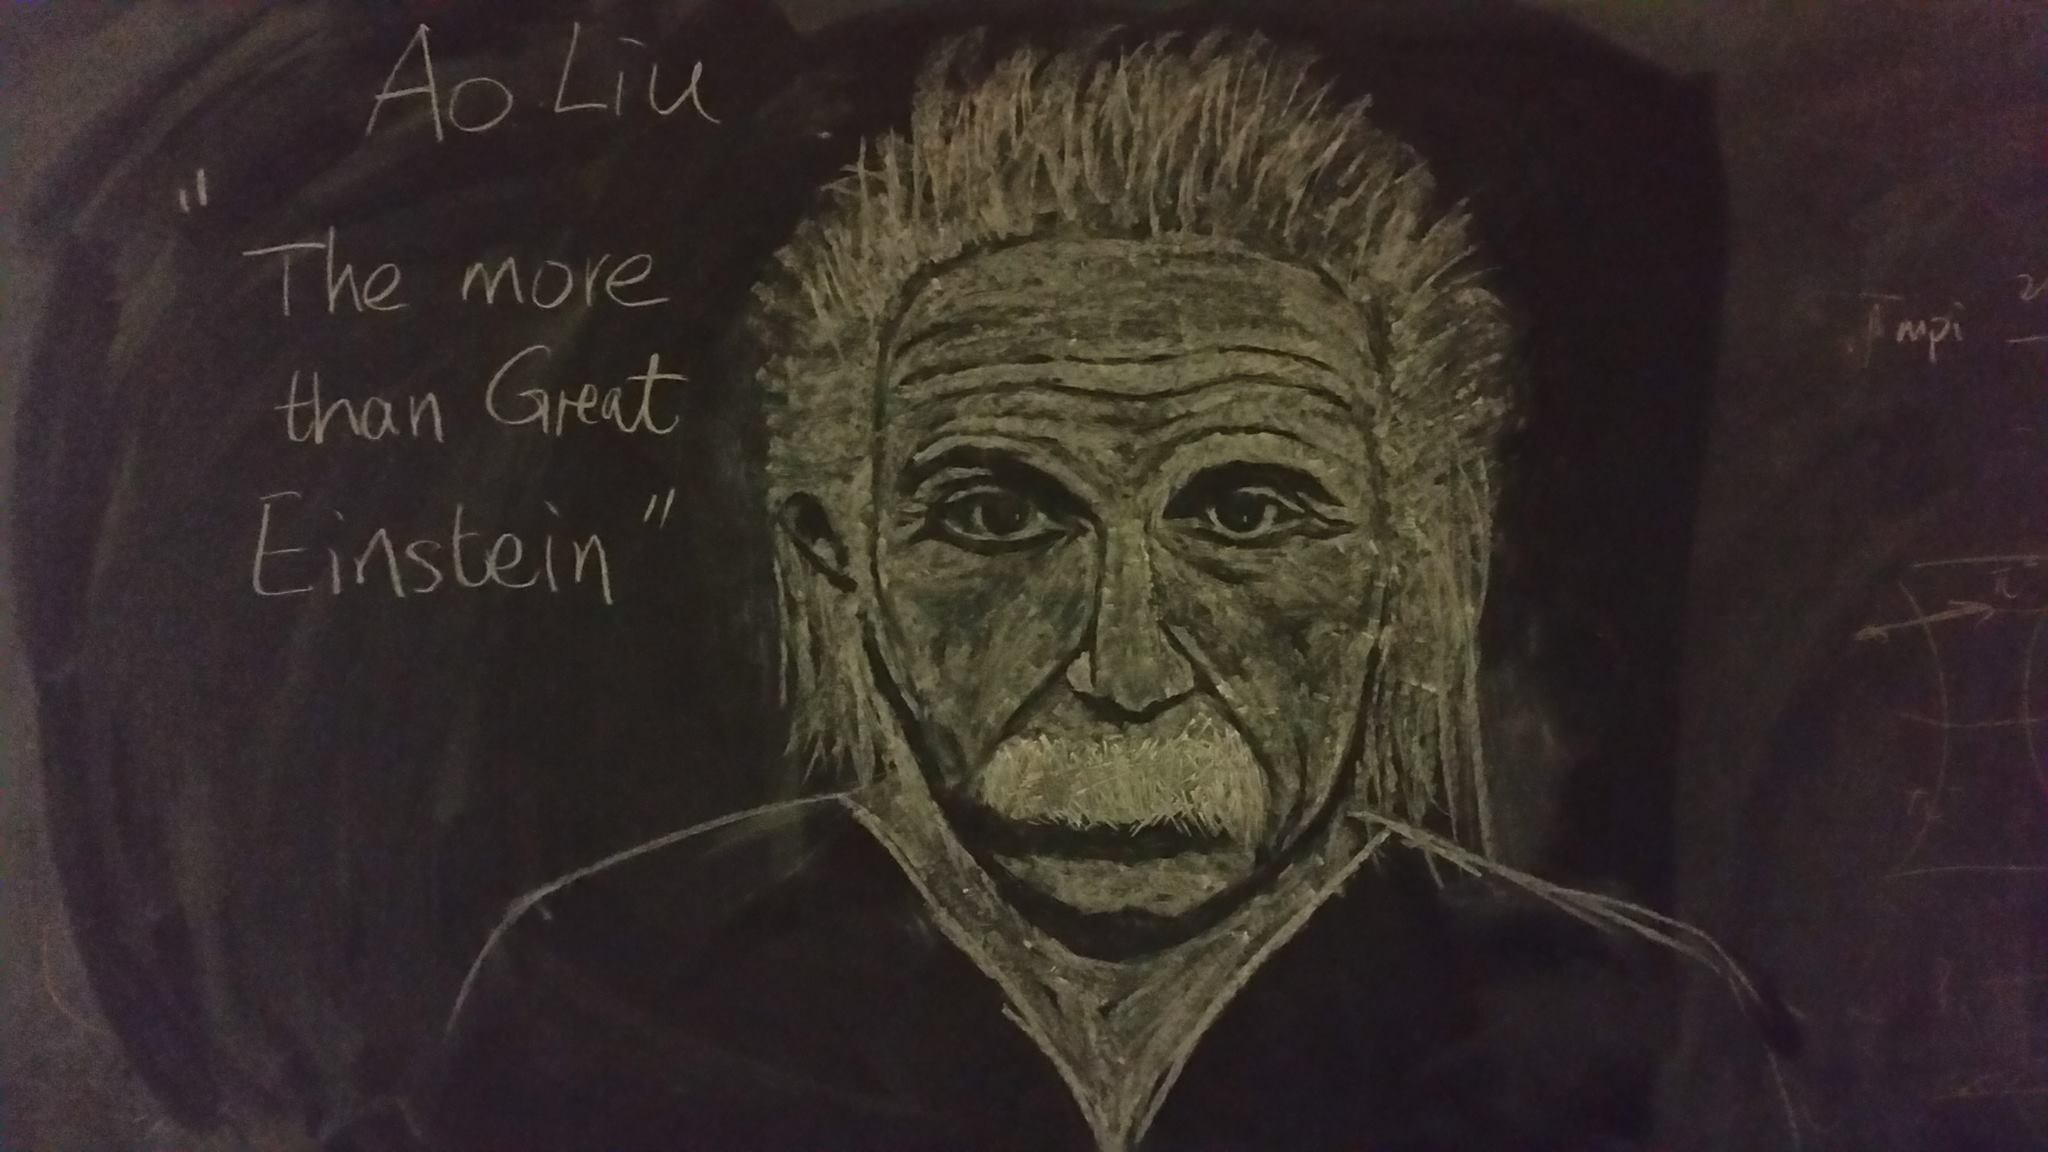 Find this chalk portrait of Einstein, drawn by Fermilab guest scientist Ao Liu, on the 13th floor of Wilson Hall at 1323. There's no high-tech here: just good, old-fashioned chalk as the medium. Einstein is located next to a chalk drawing of Richard Feynman. Drawing: Ao Liu, AD